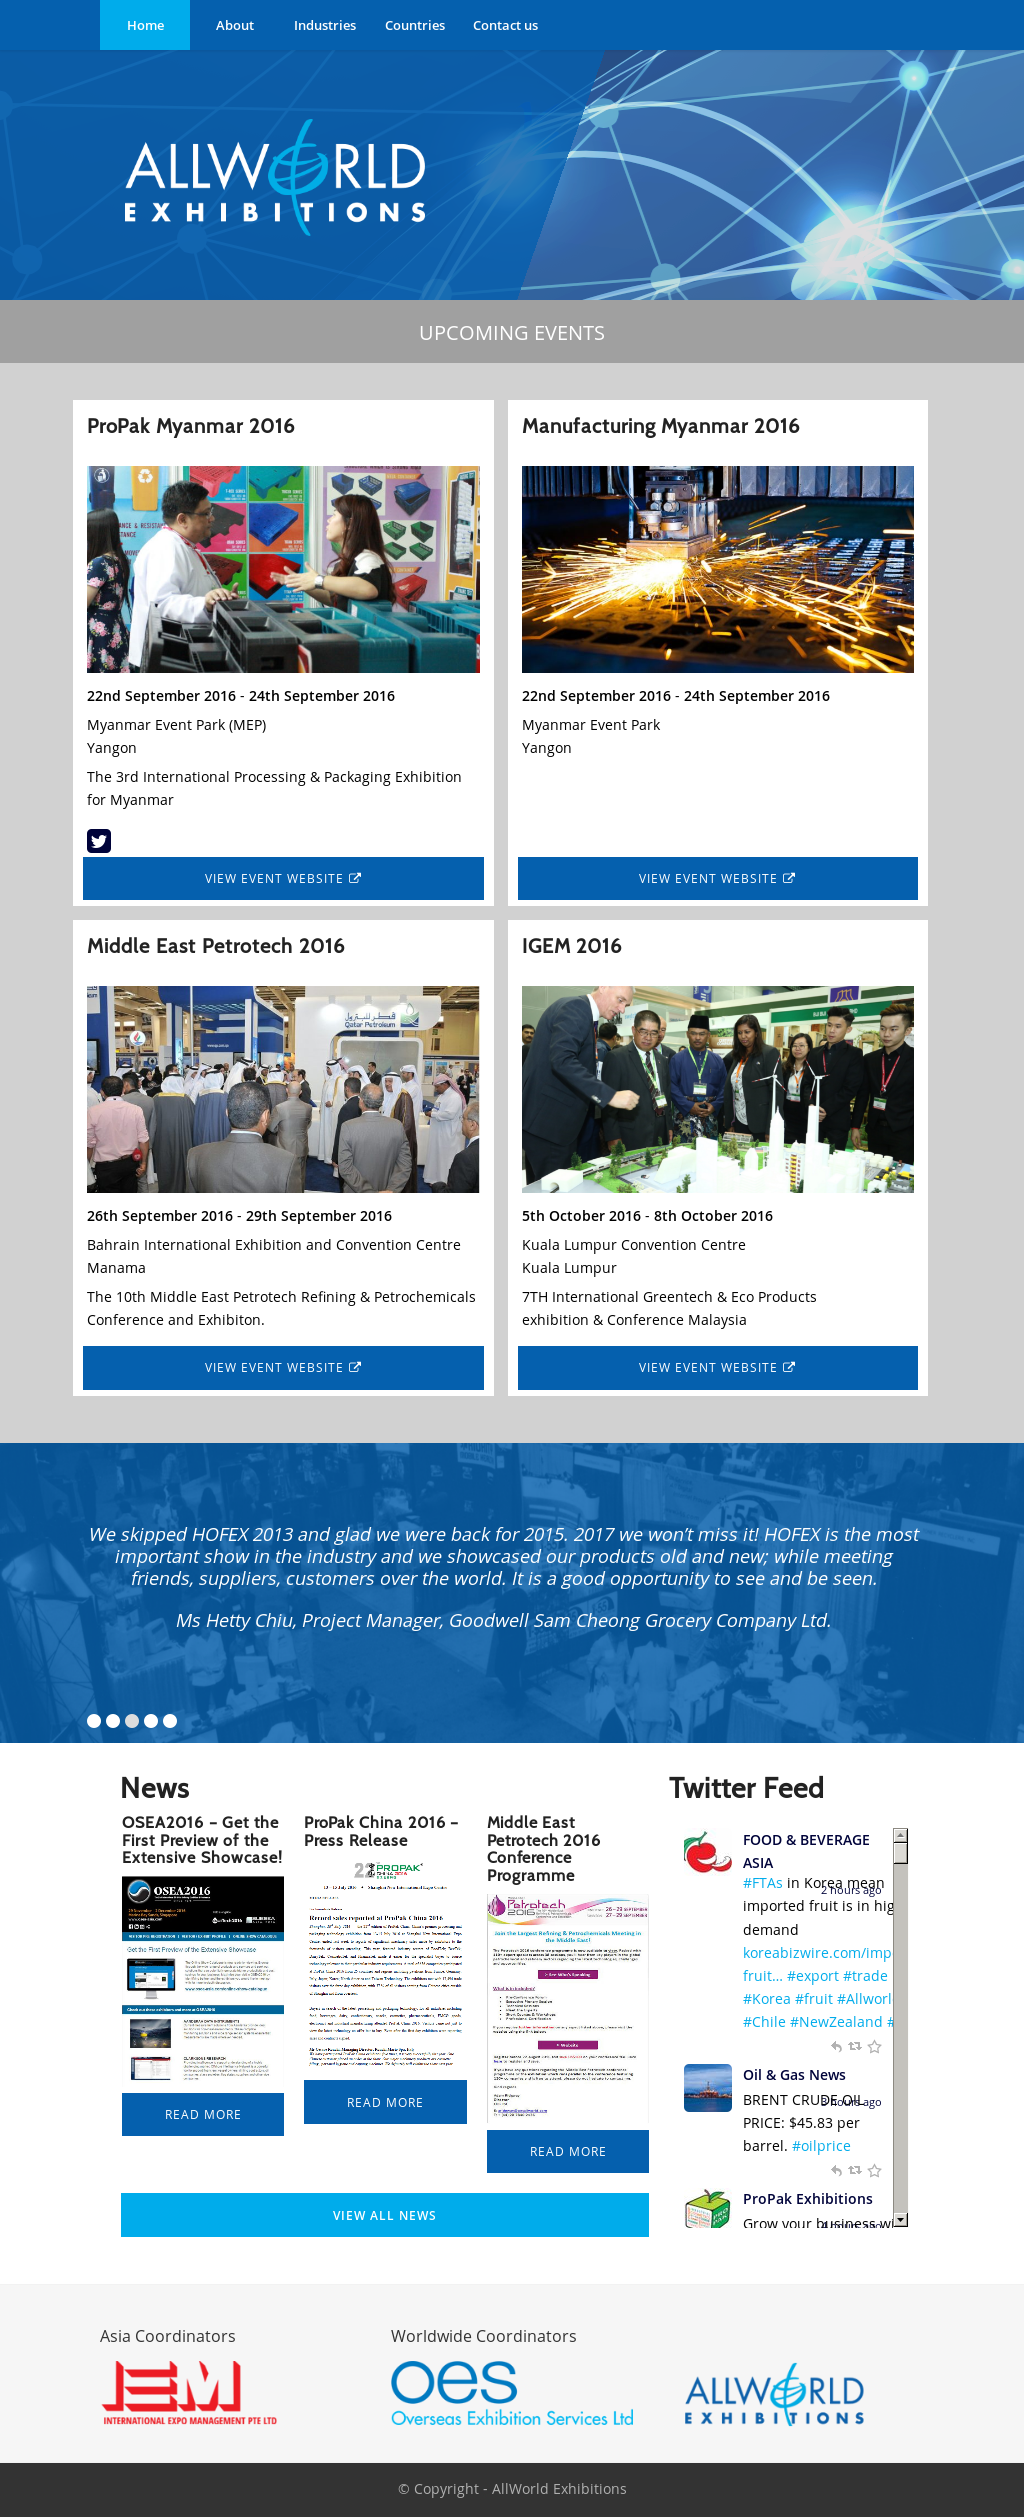 AllWorld Exhibitions Competitors, Revenue and Employees